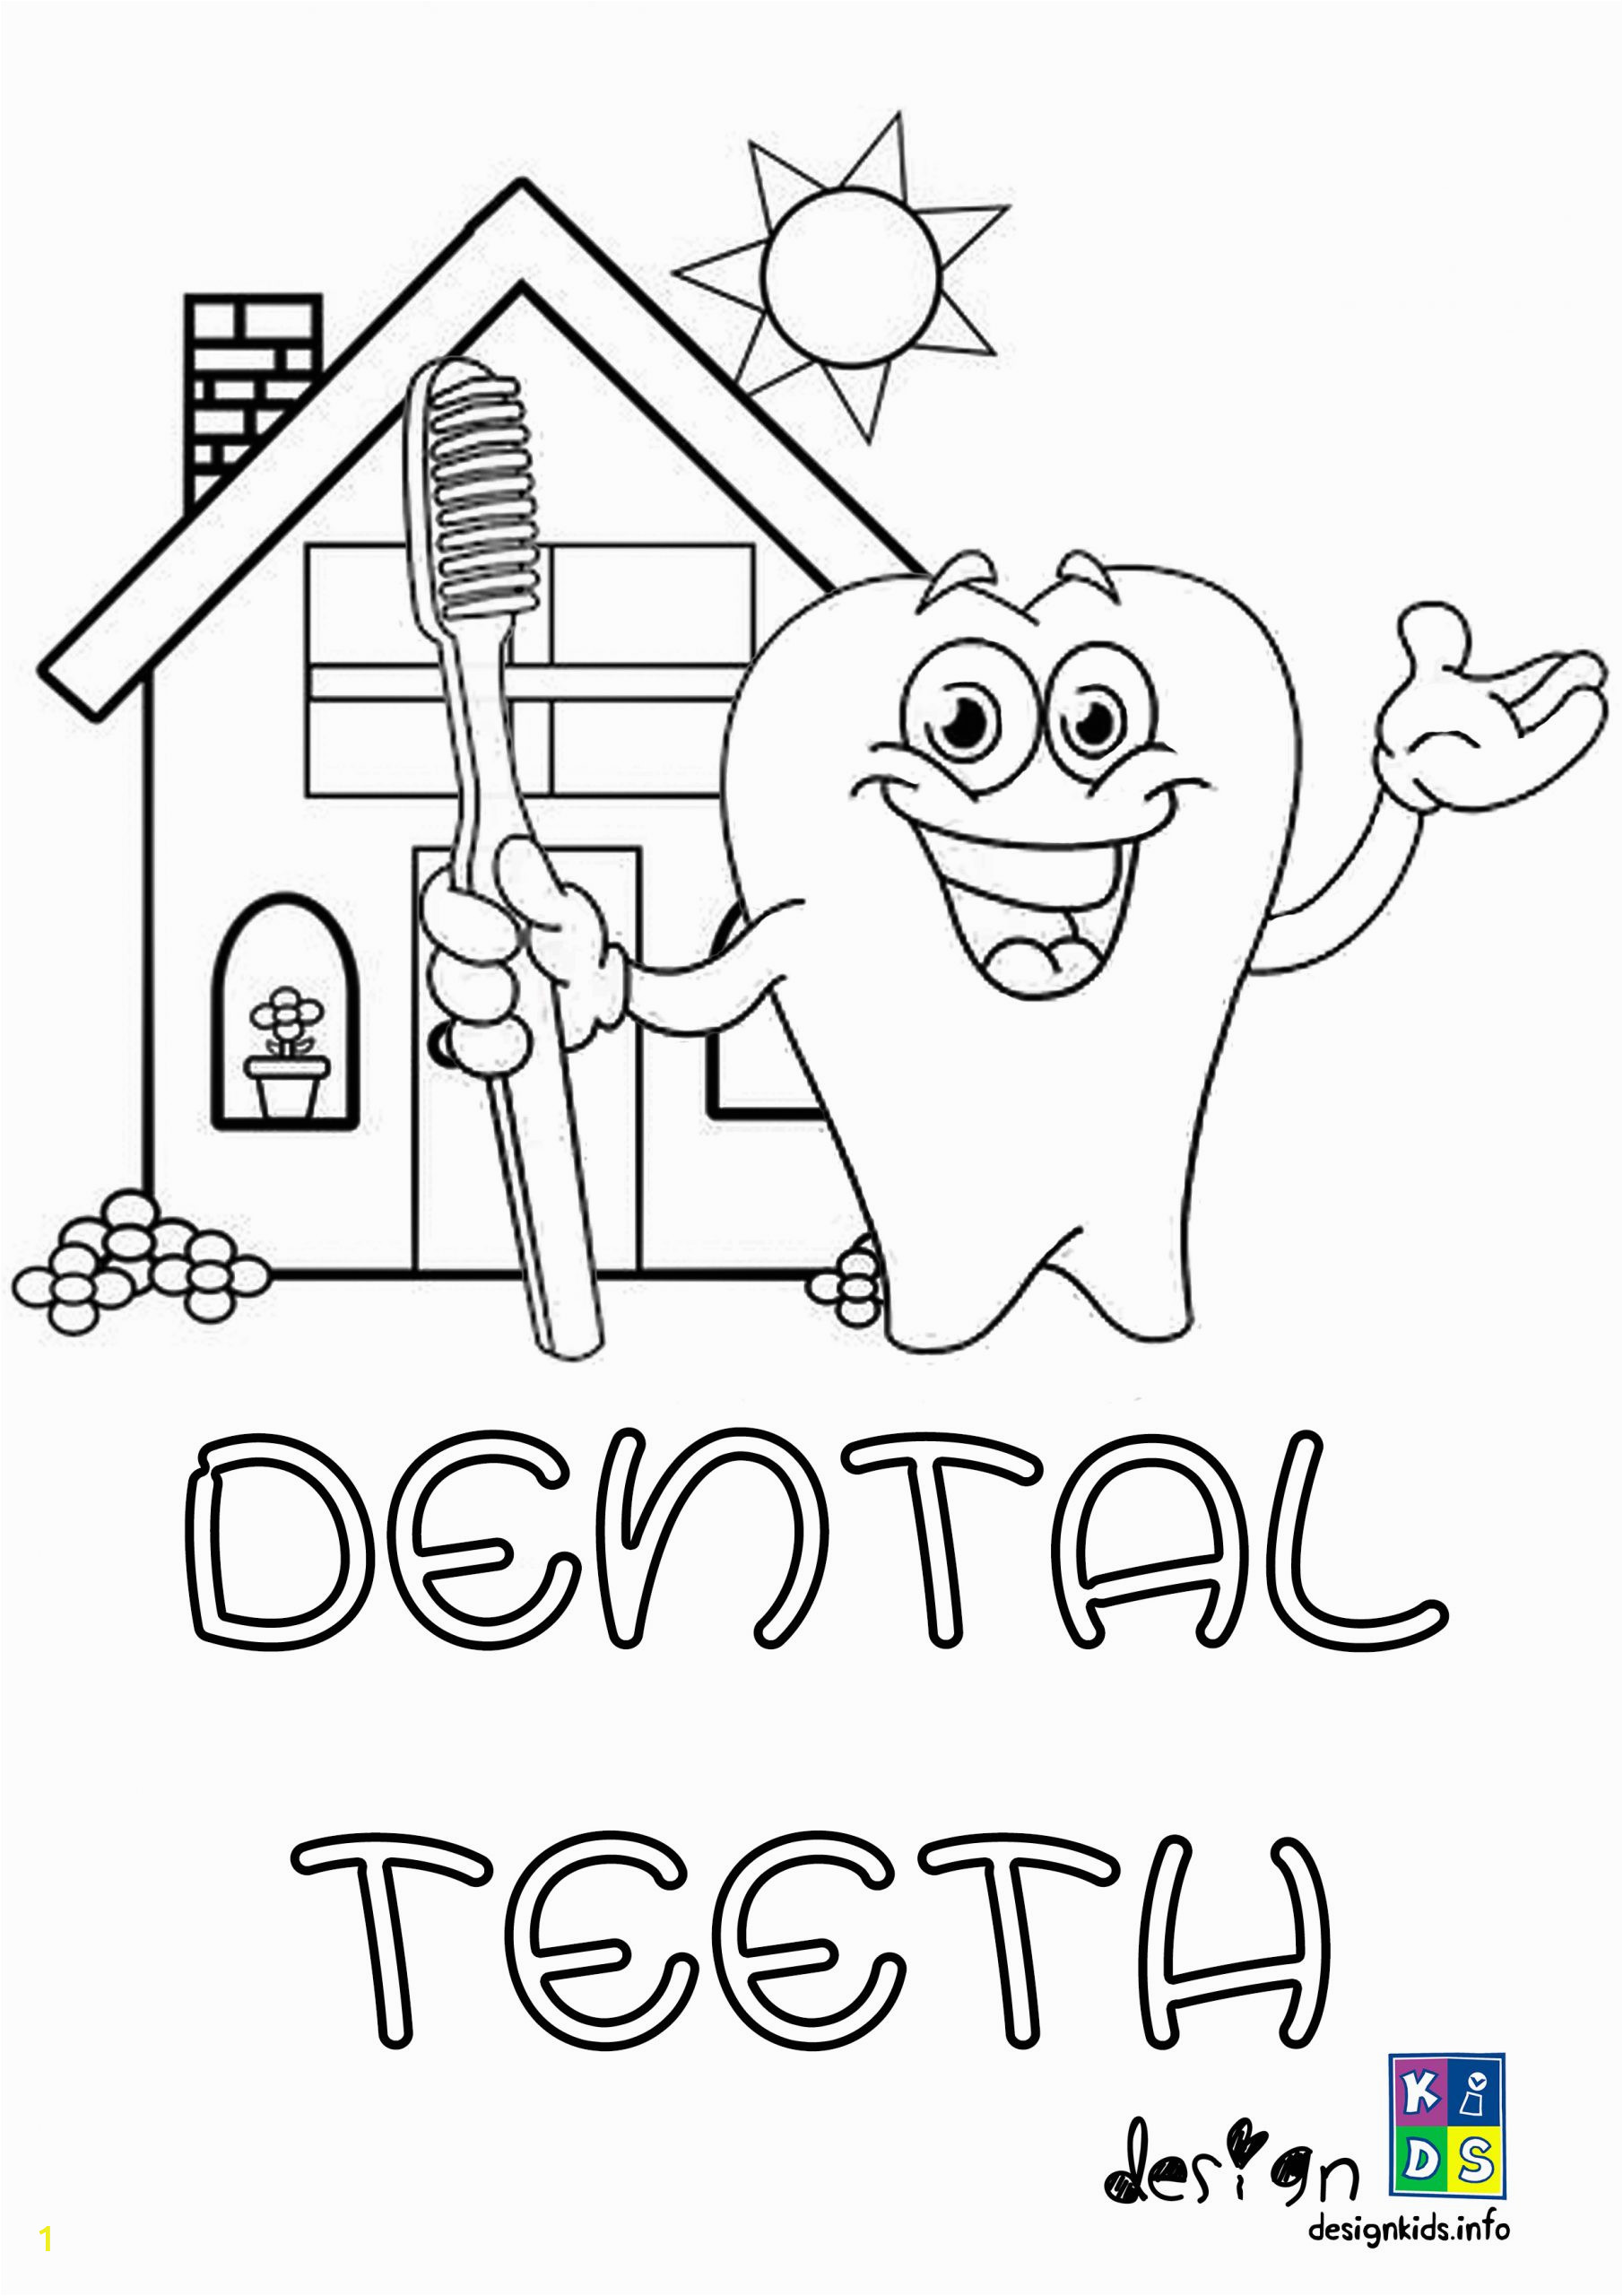 dental coloring pages for kids free printable health scaled color teeth sheets nemesiscolor co children yellow dentist gingivitis treatment appointment associates